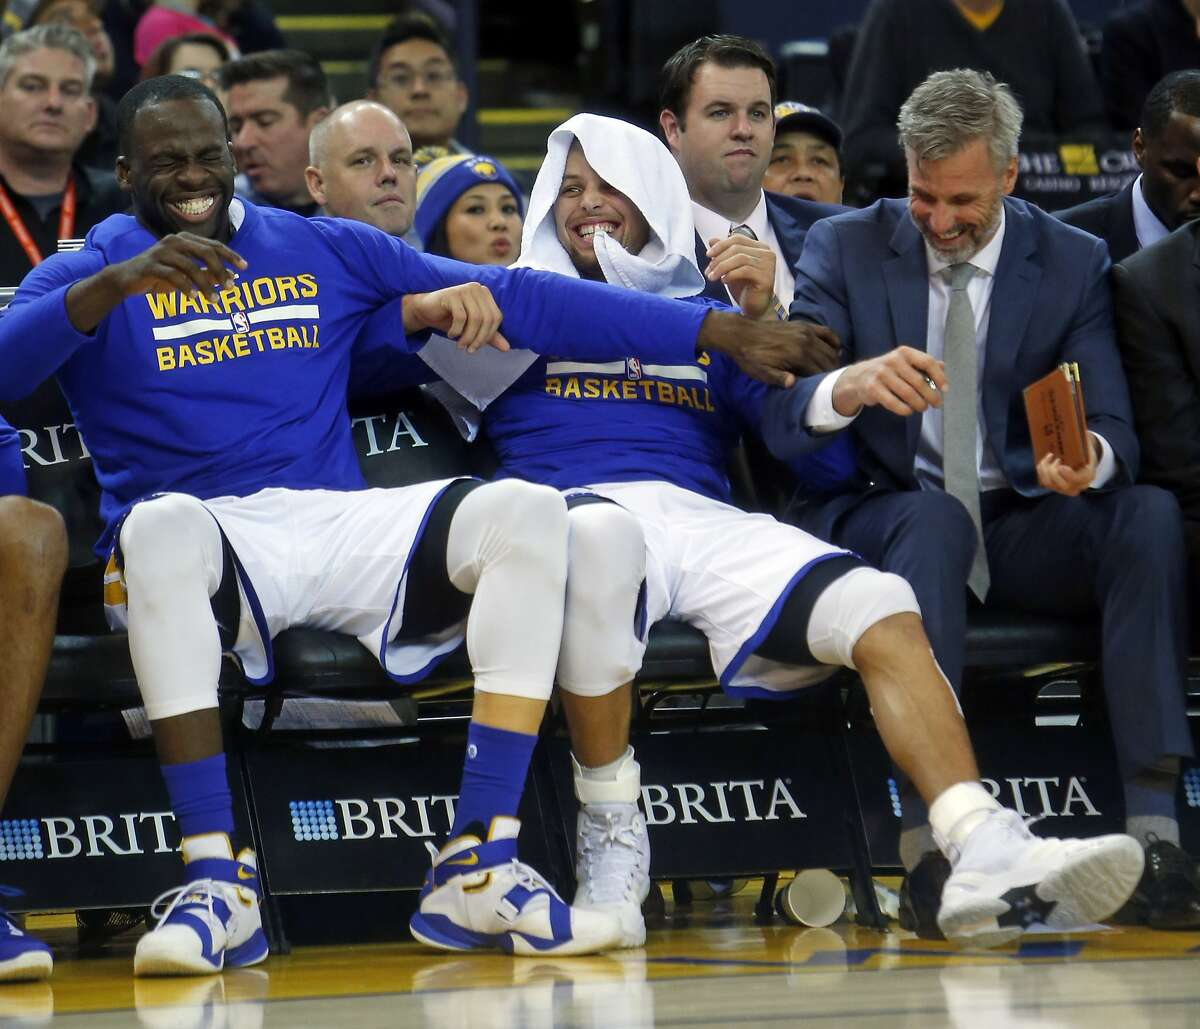 Golden State Warriors' Draymond Green, Stephen Curry and assistant coach Bruce Fraser enjoy 4th quarter of Warriors' 122-103 win over Sacramento Kings during NBA game at Oracle Arena in Oakland, Calif., on Monday, December 28, 2015.